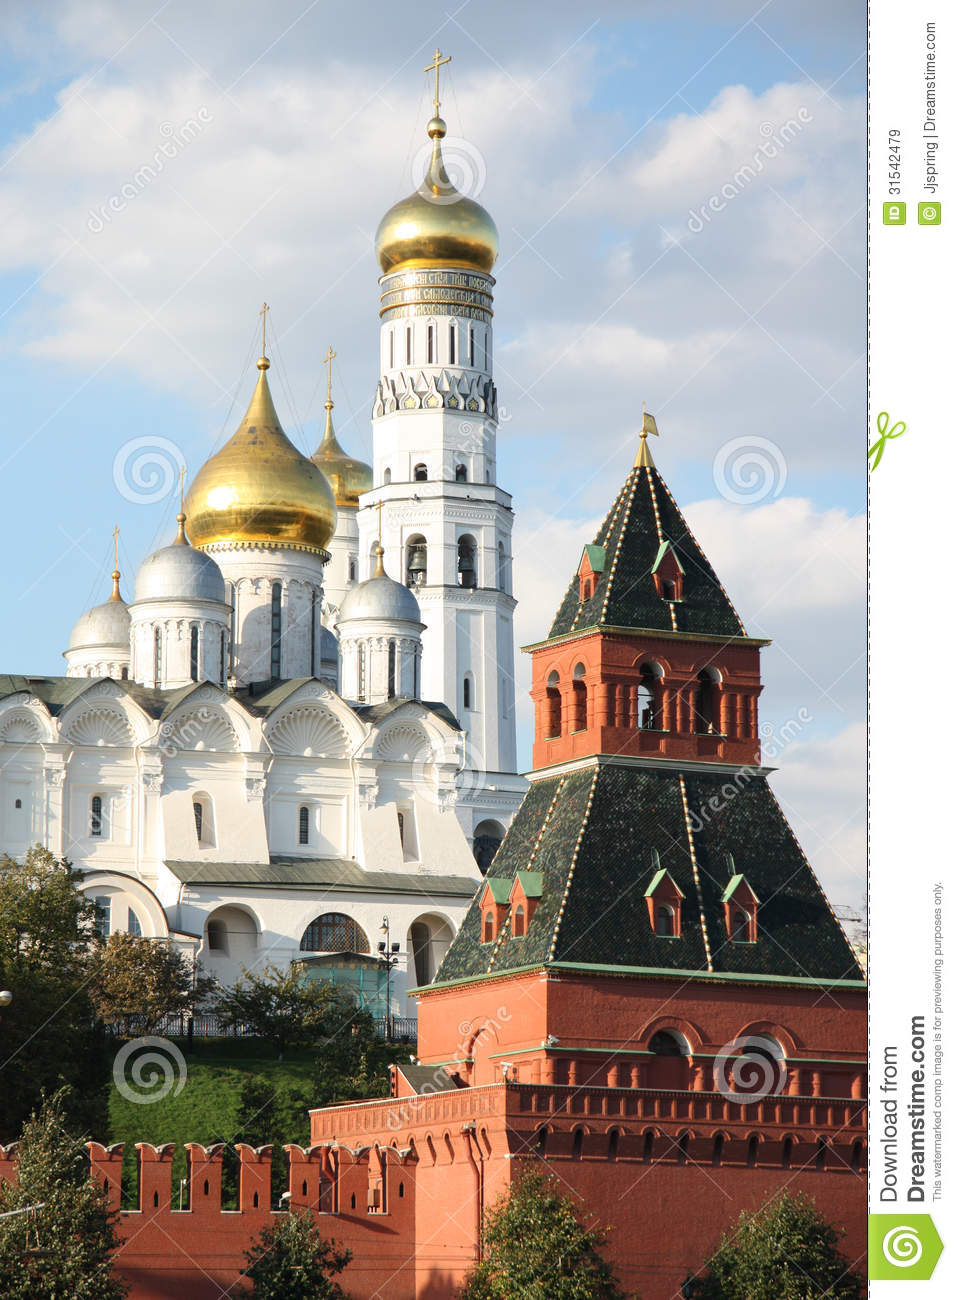 The Ivan The Great Bell Tower Of Moscow Kremlin Royalty Free Stock.